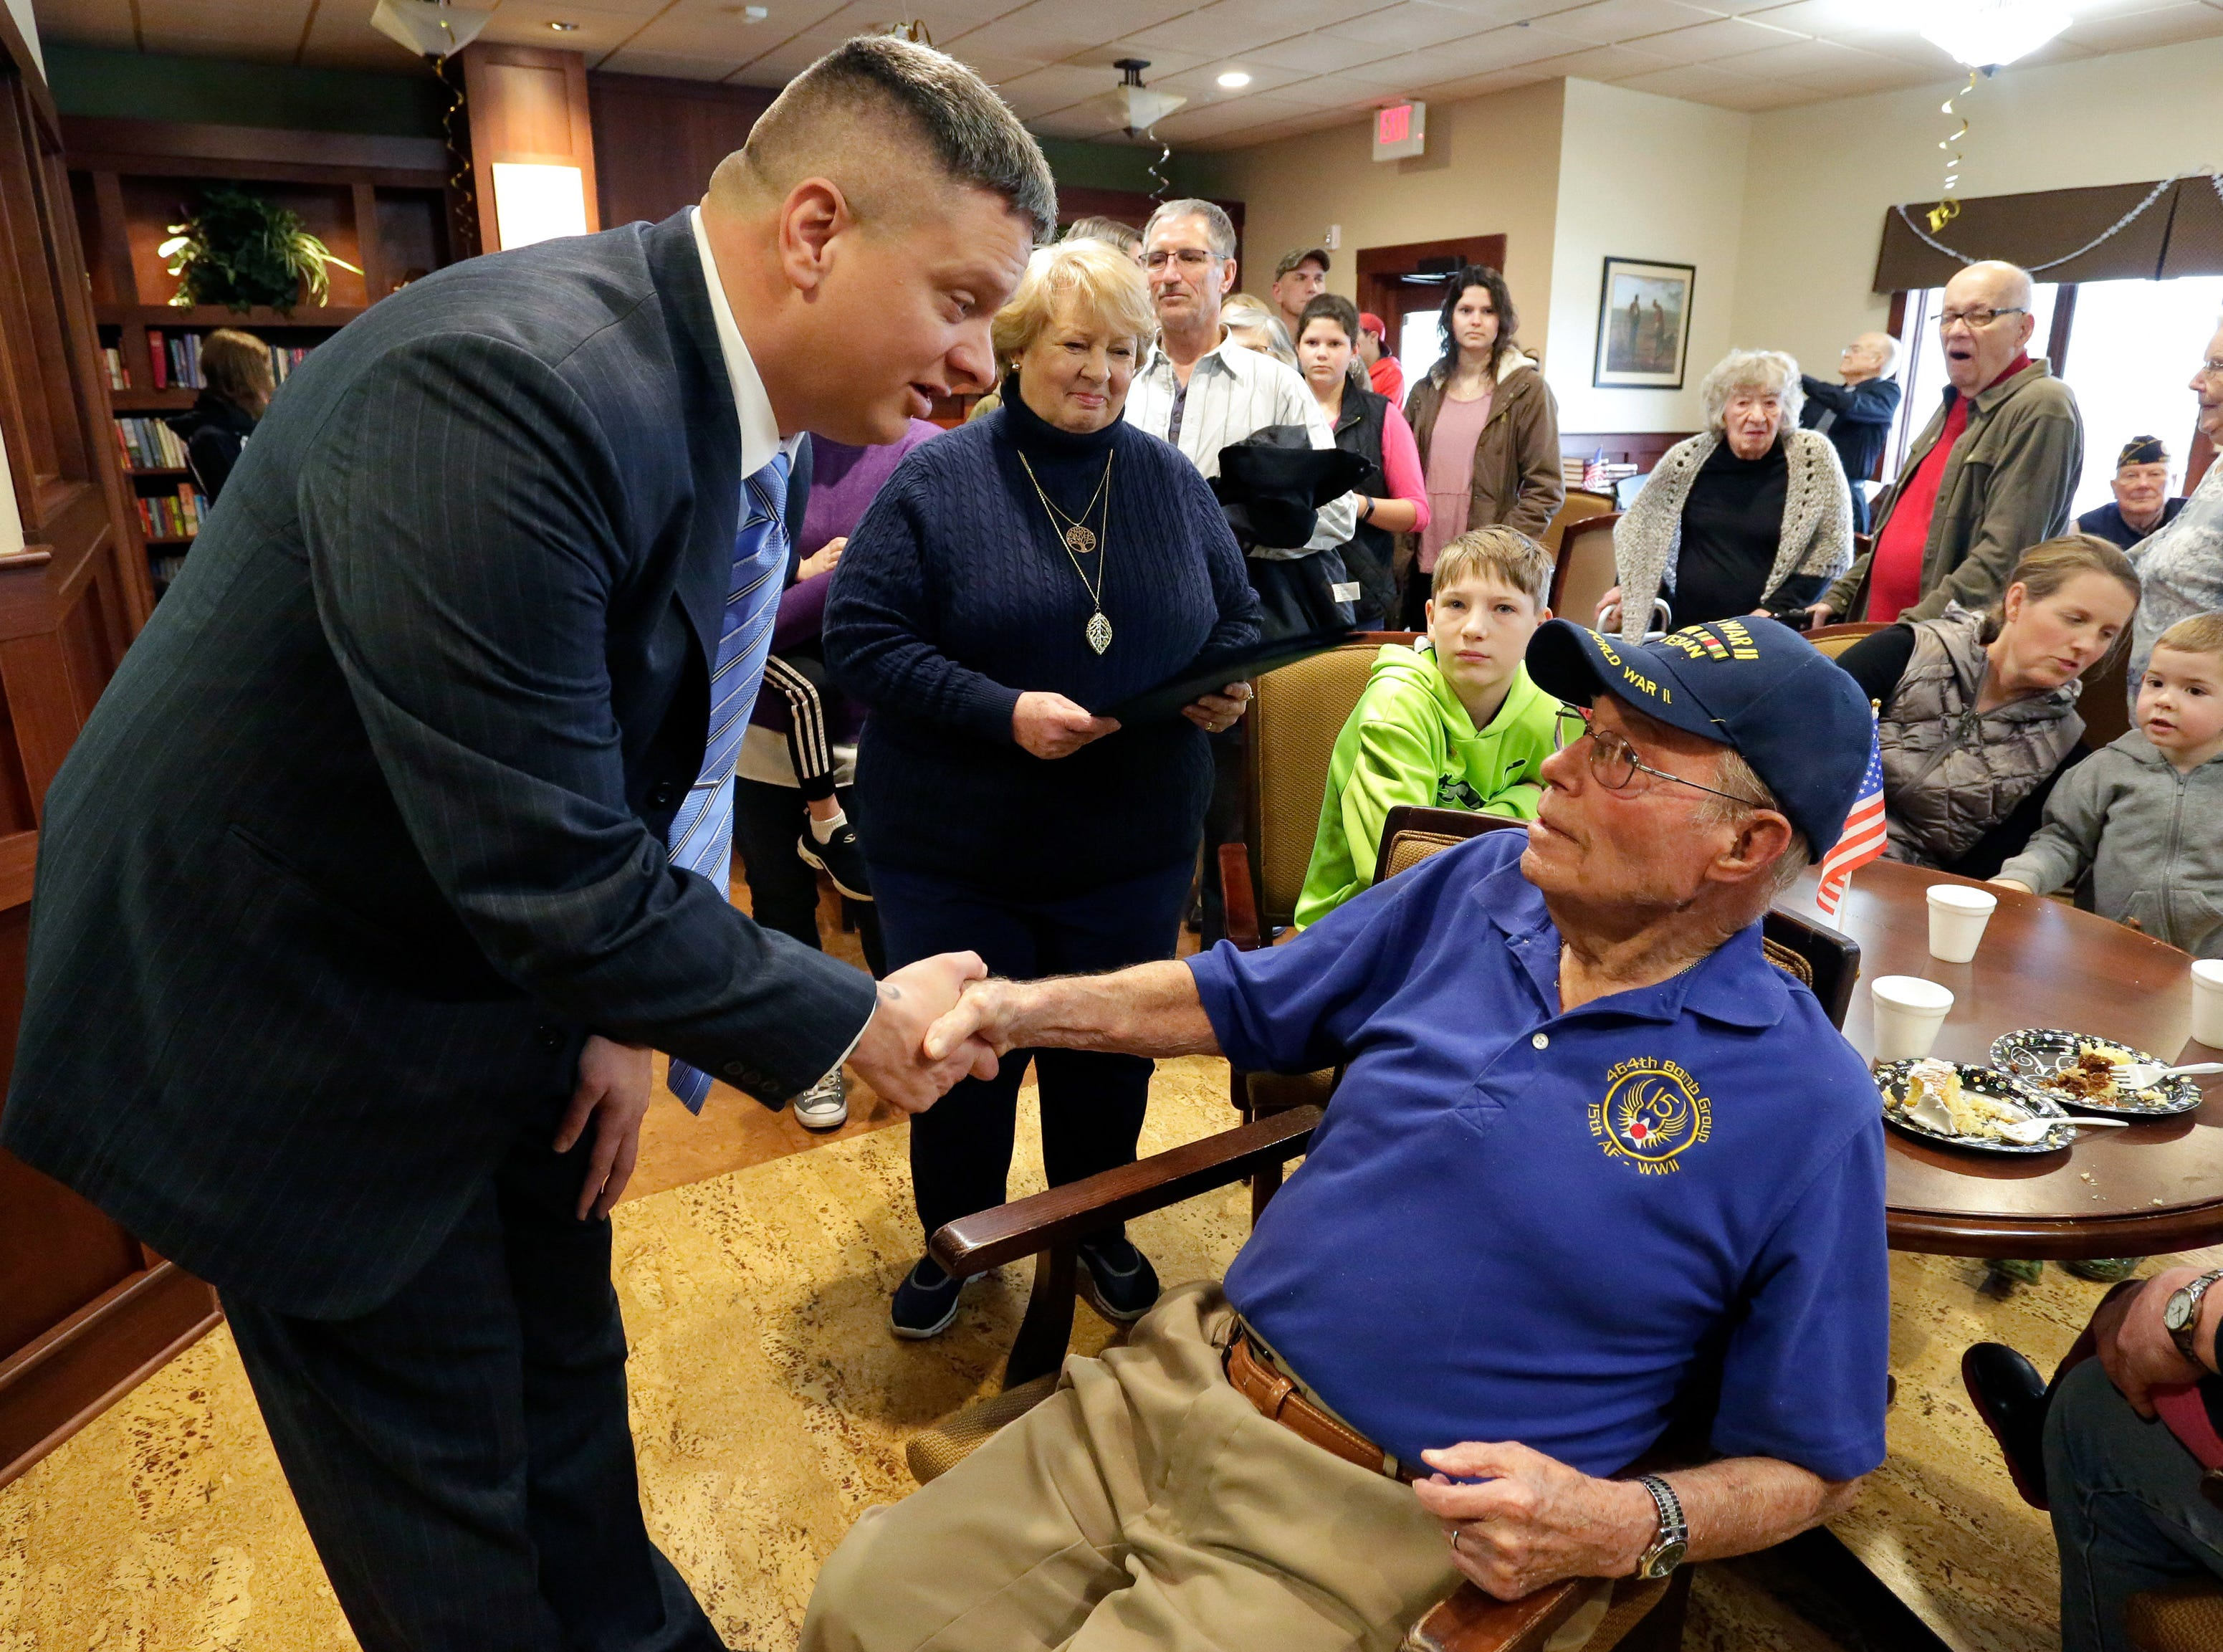 Interim Sheboygan County Veteran Service Officer Todd Richter greets World War II veteran Don Harder on his 100th Birthday, Friday January 18, 2019, 2019, at Pine Haven Christian Communities in Oostburg, Wis.